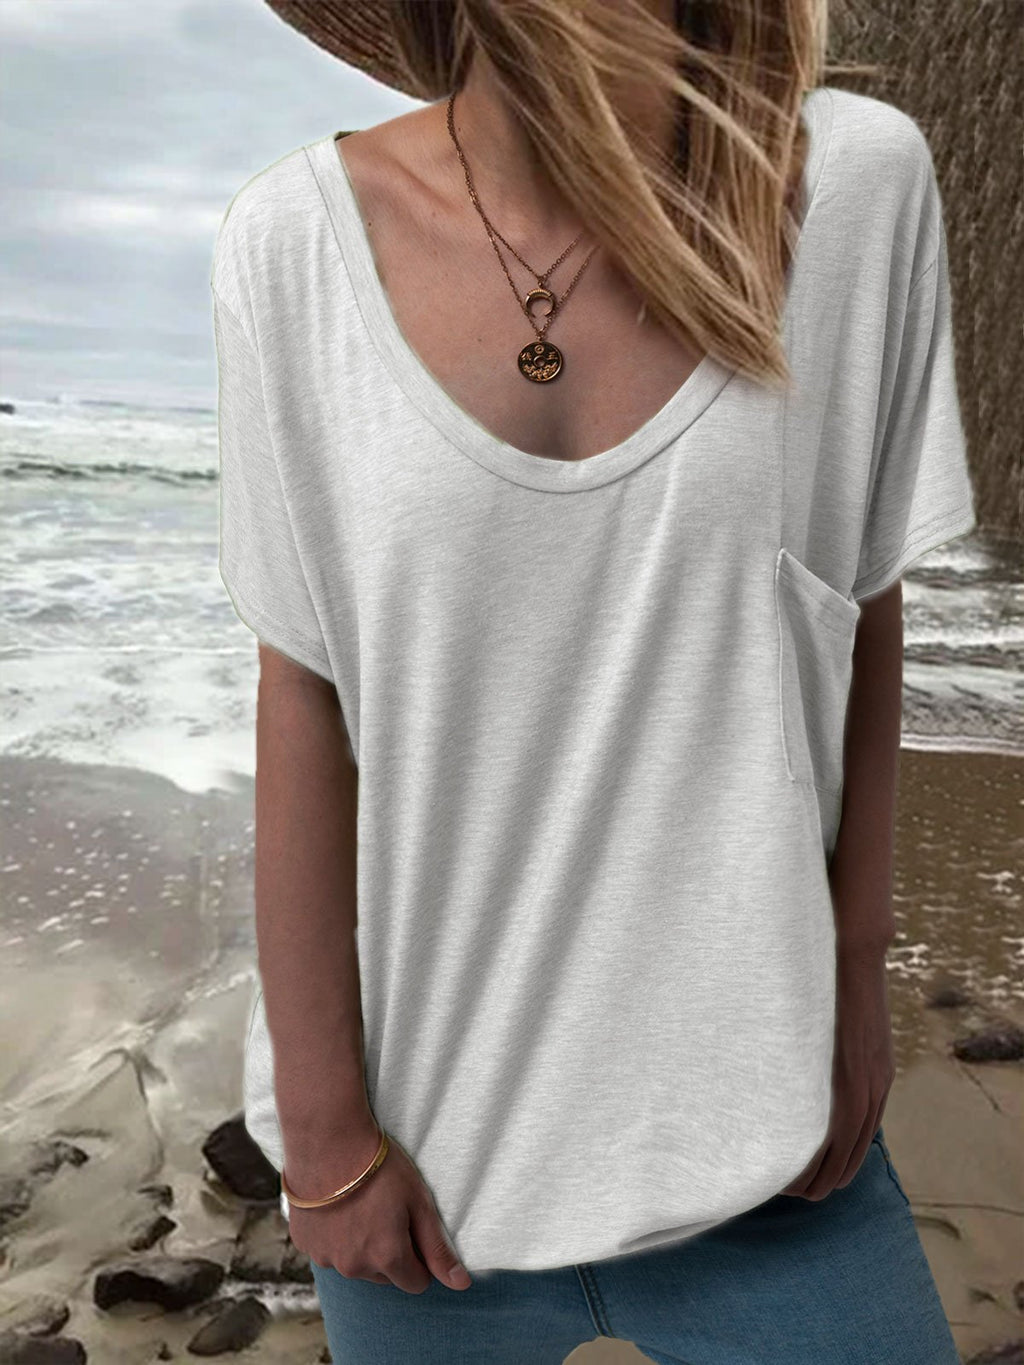 Women Summer Basic T Shirt Tops Tee